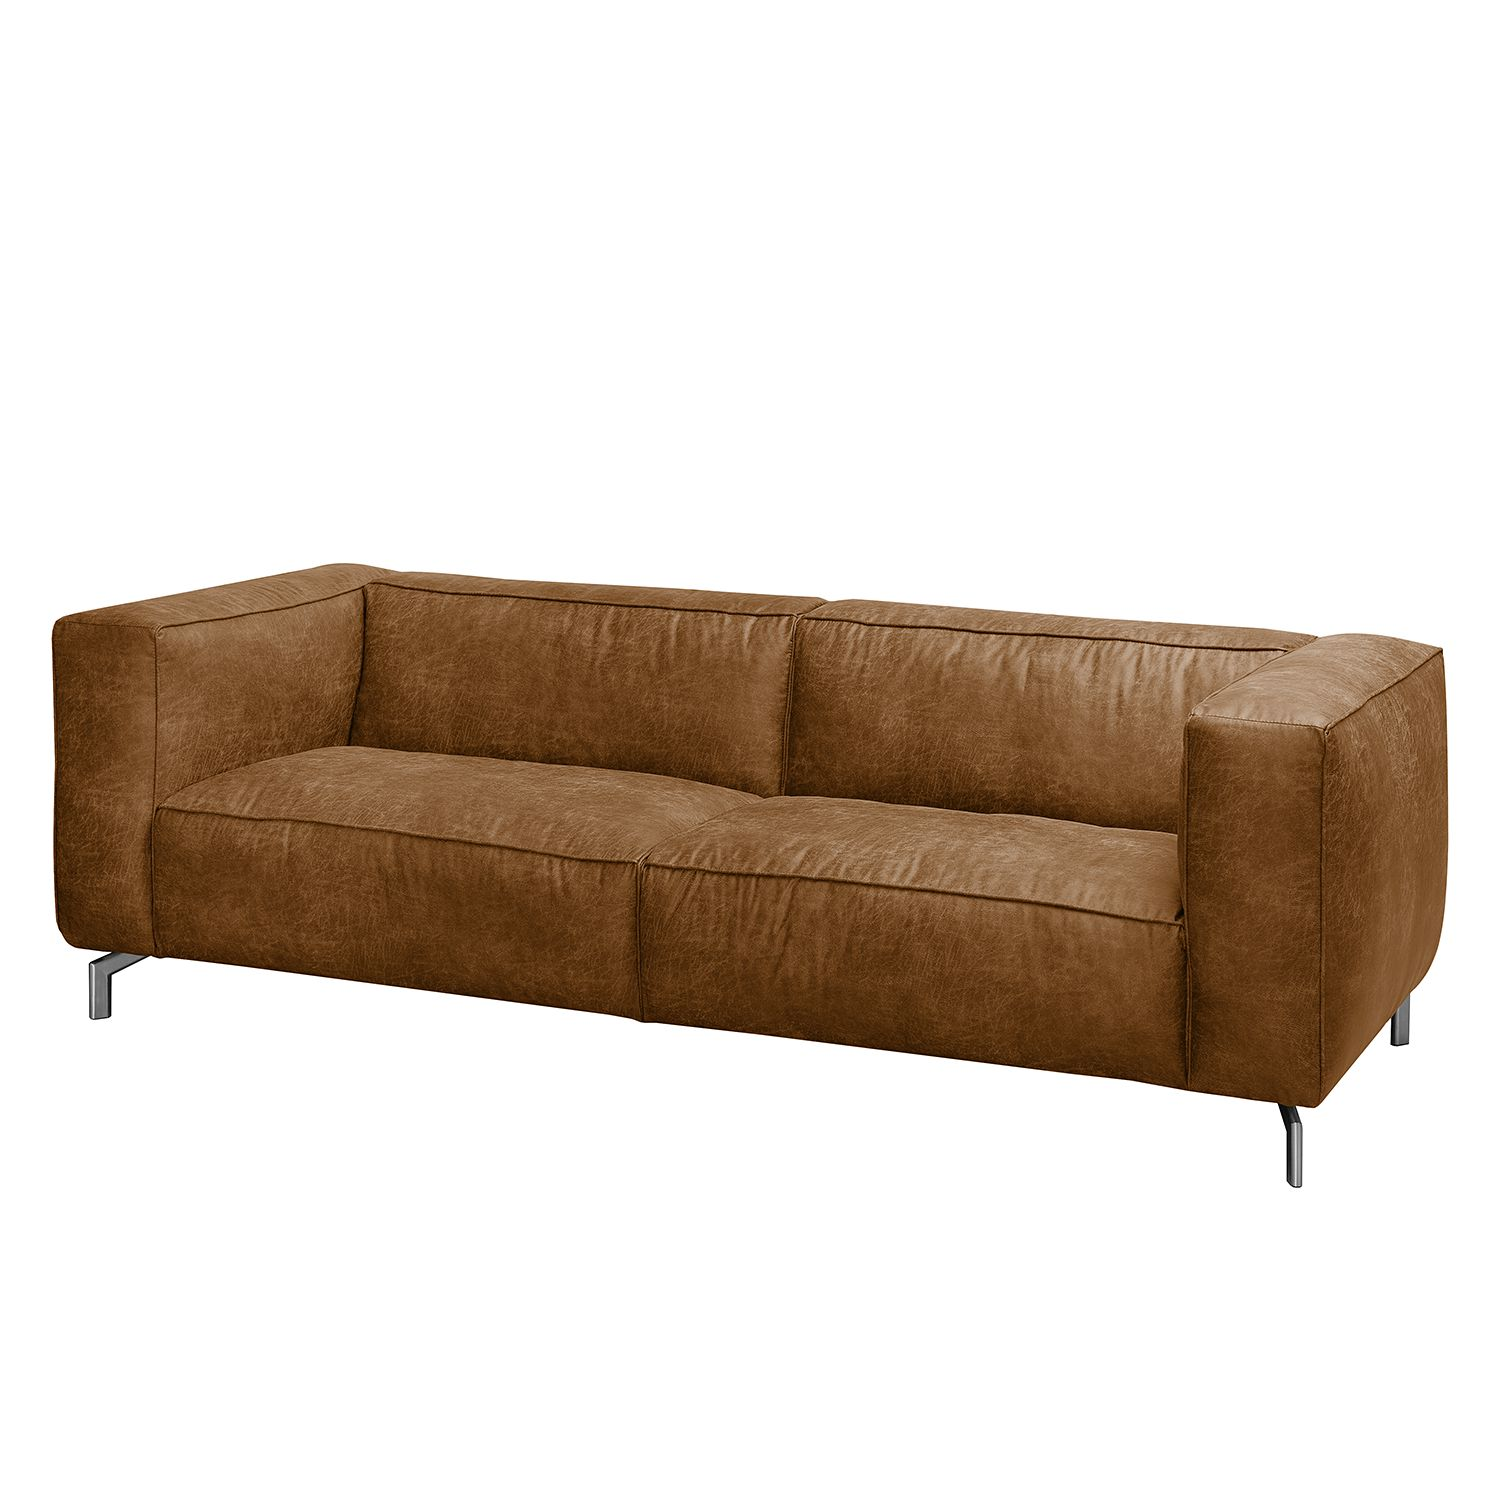 Sofa Pentre (3-Sitzer) - Antiklederlook - Nougat, ars manufacti